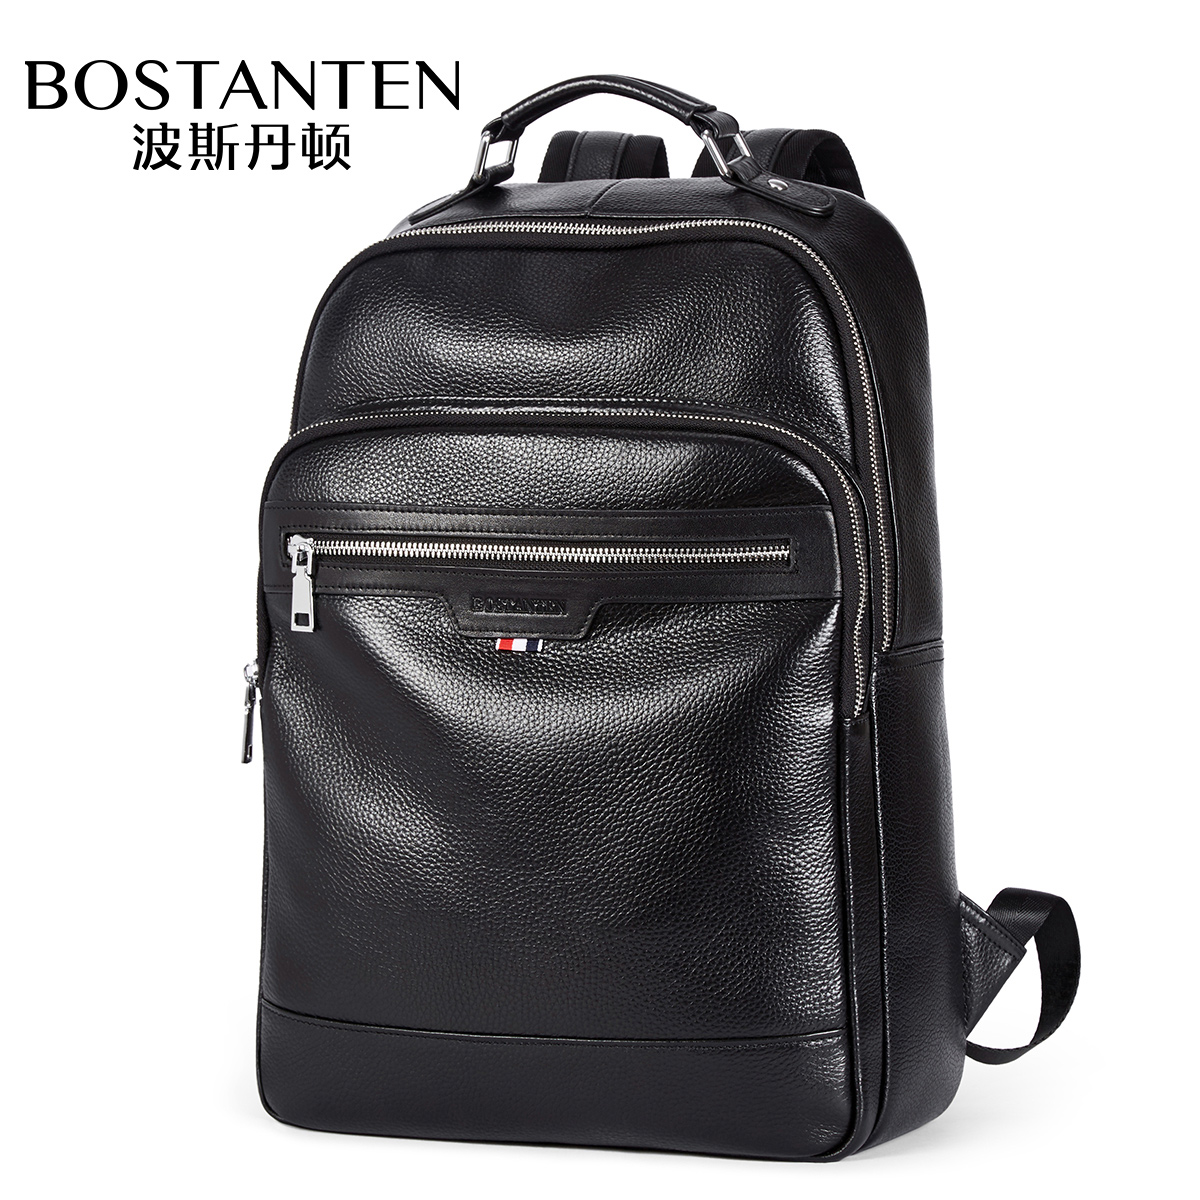 Bostanten 2018 New Style Genuine Leather Backpack mens Cow Leather Computer Bussiness Casual Waterproof Fashion Wearproof BagsBostanten 2018 New Style Genuine Leather Backpack mens Cow Leather Computer Bussiness Casual Waterproof Fashion Wearproof Bags